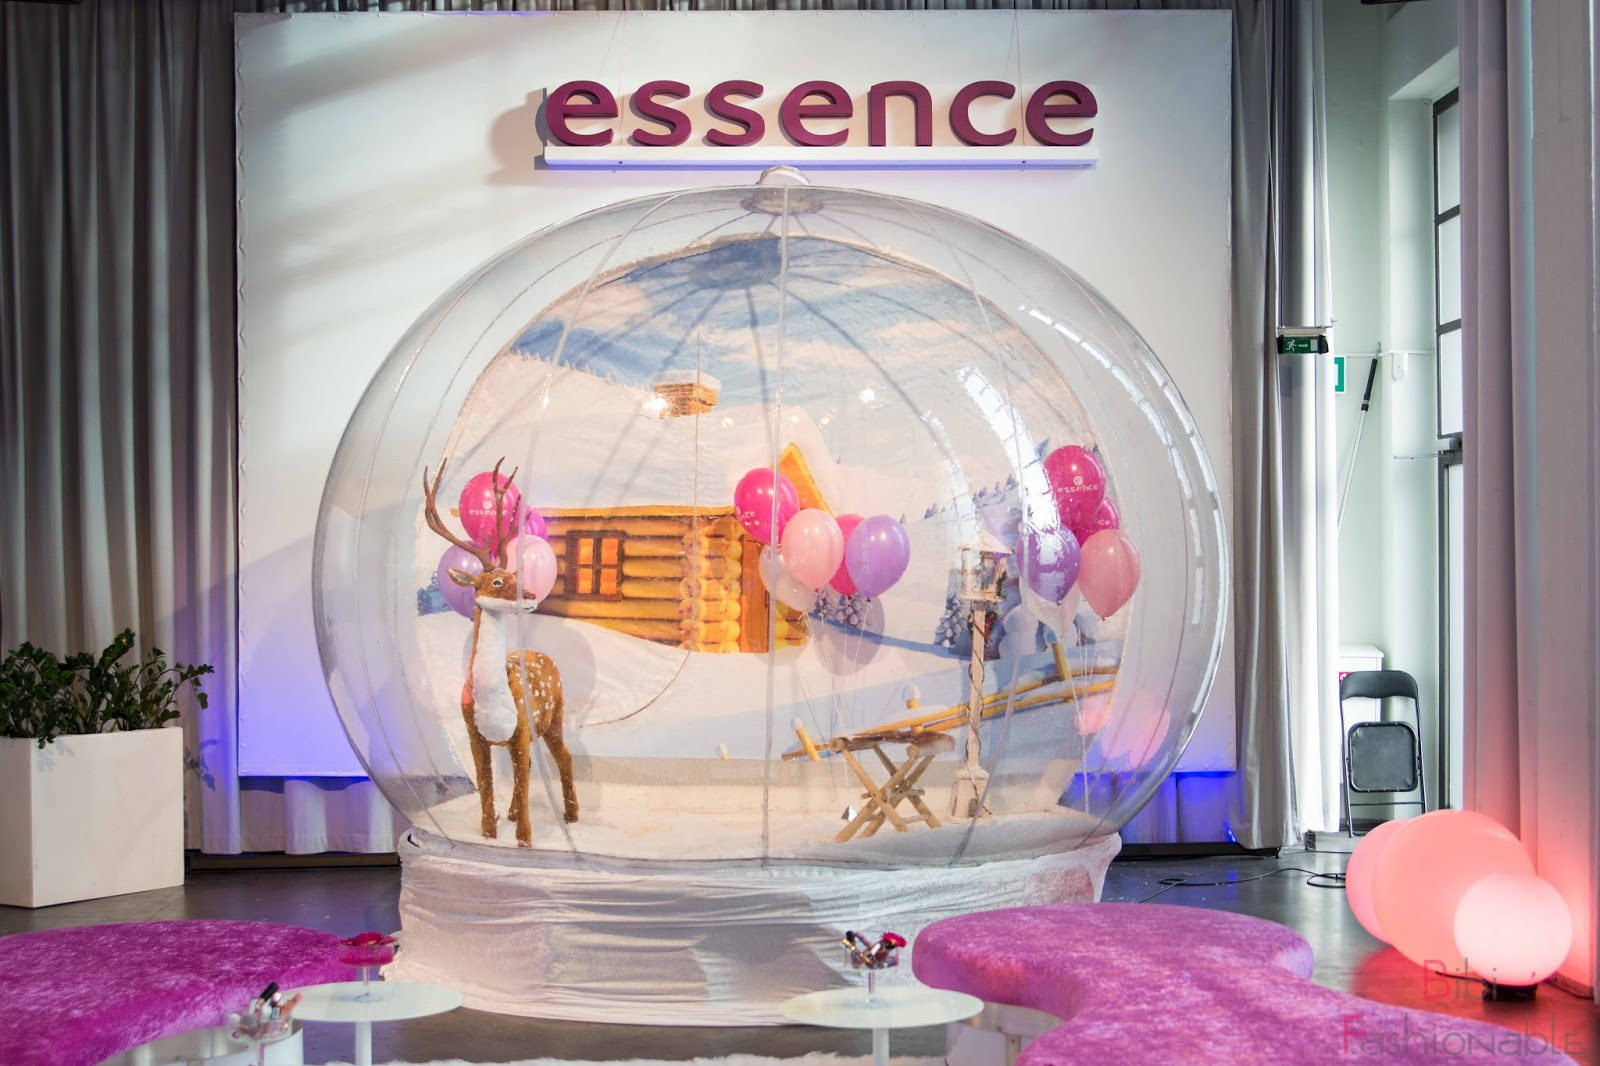 essence event köln spring summer 2017 schneekugel